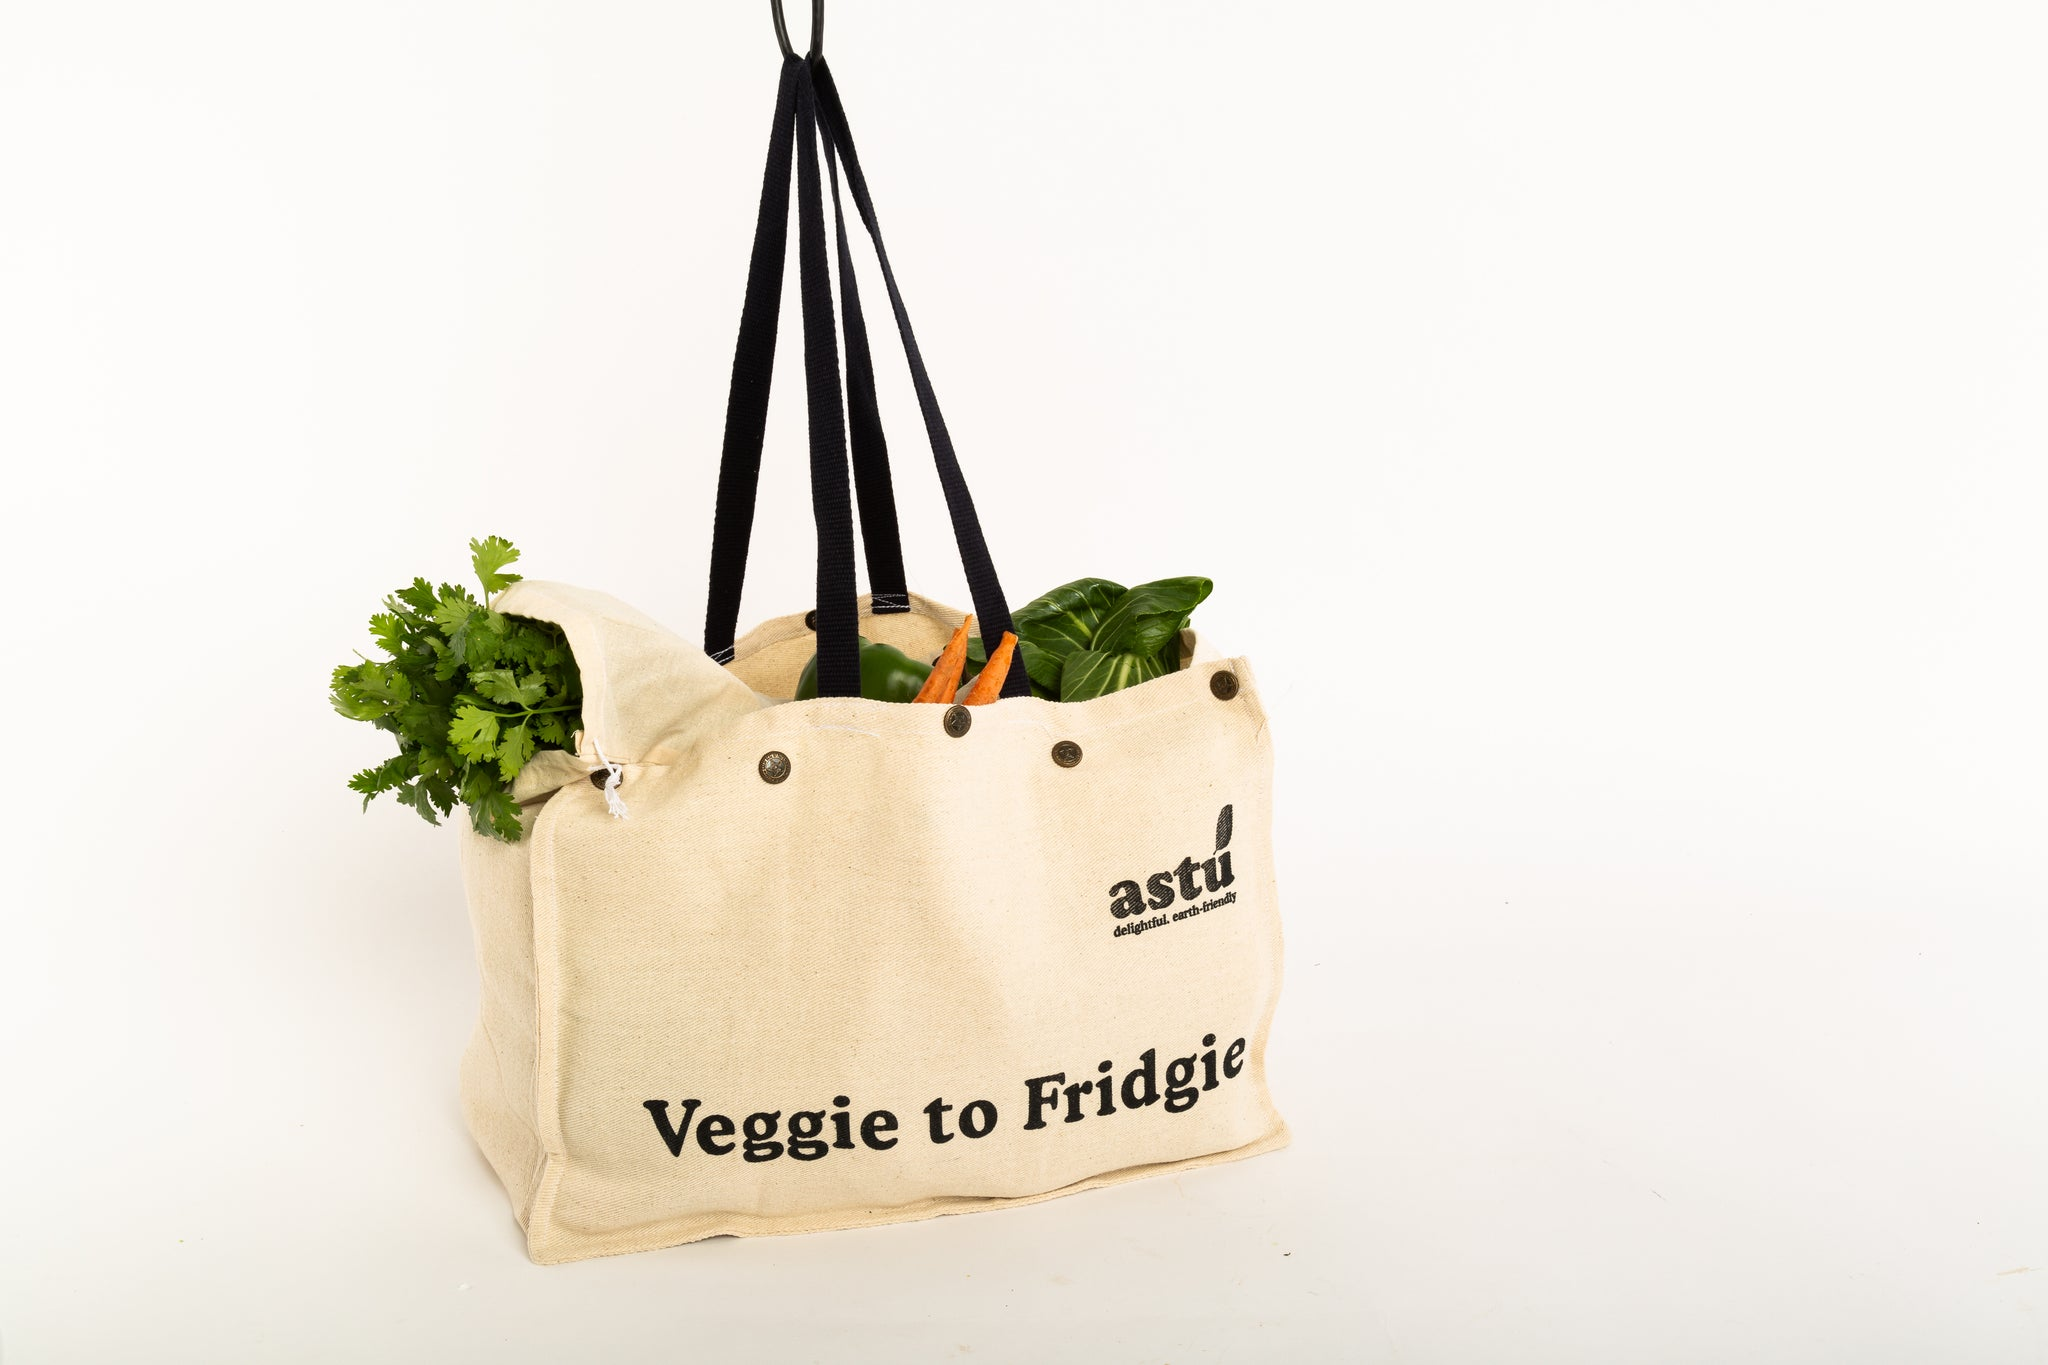 Veggie to Fridge - Grocery bag with pouches